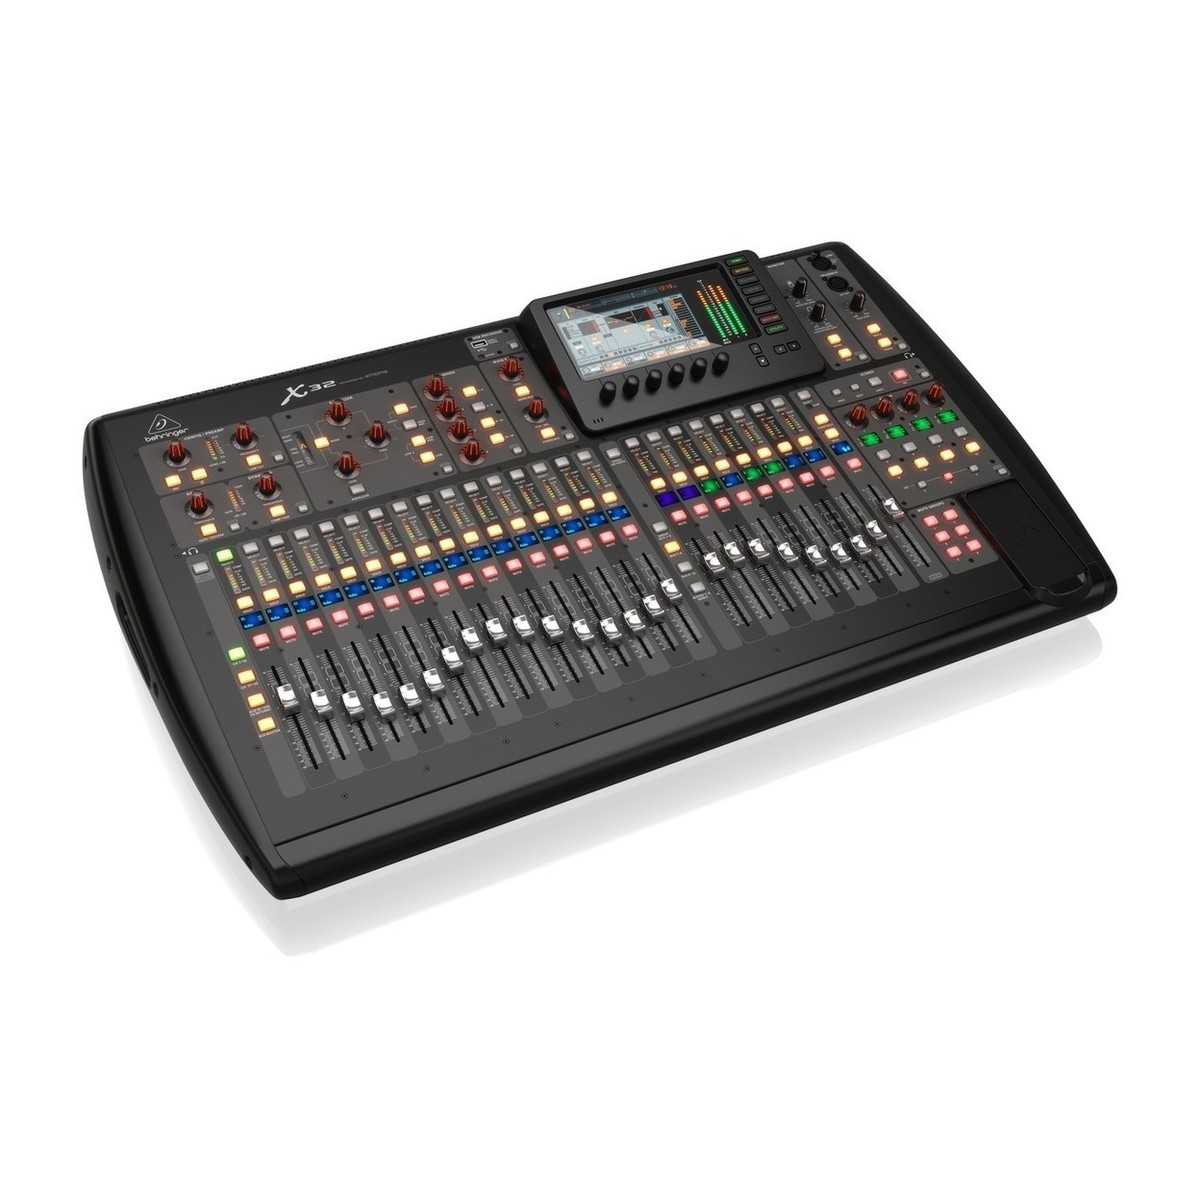 behringer x32 32 channel digital mixer with gator g tour x32ndh case at gear4music. Black Bedroom Furniture Sets. Home Design Ideas